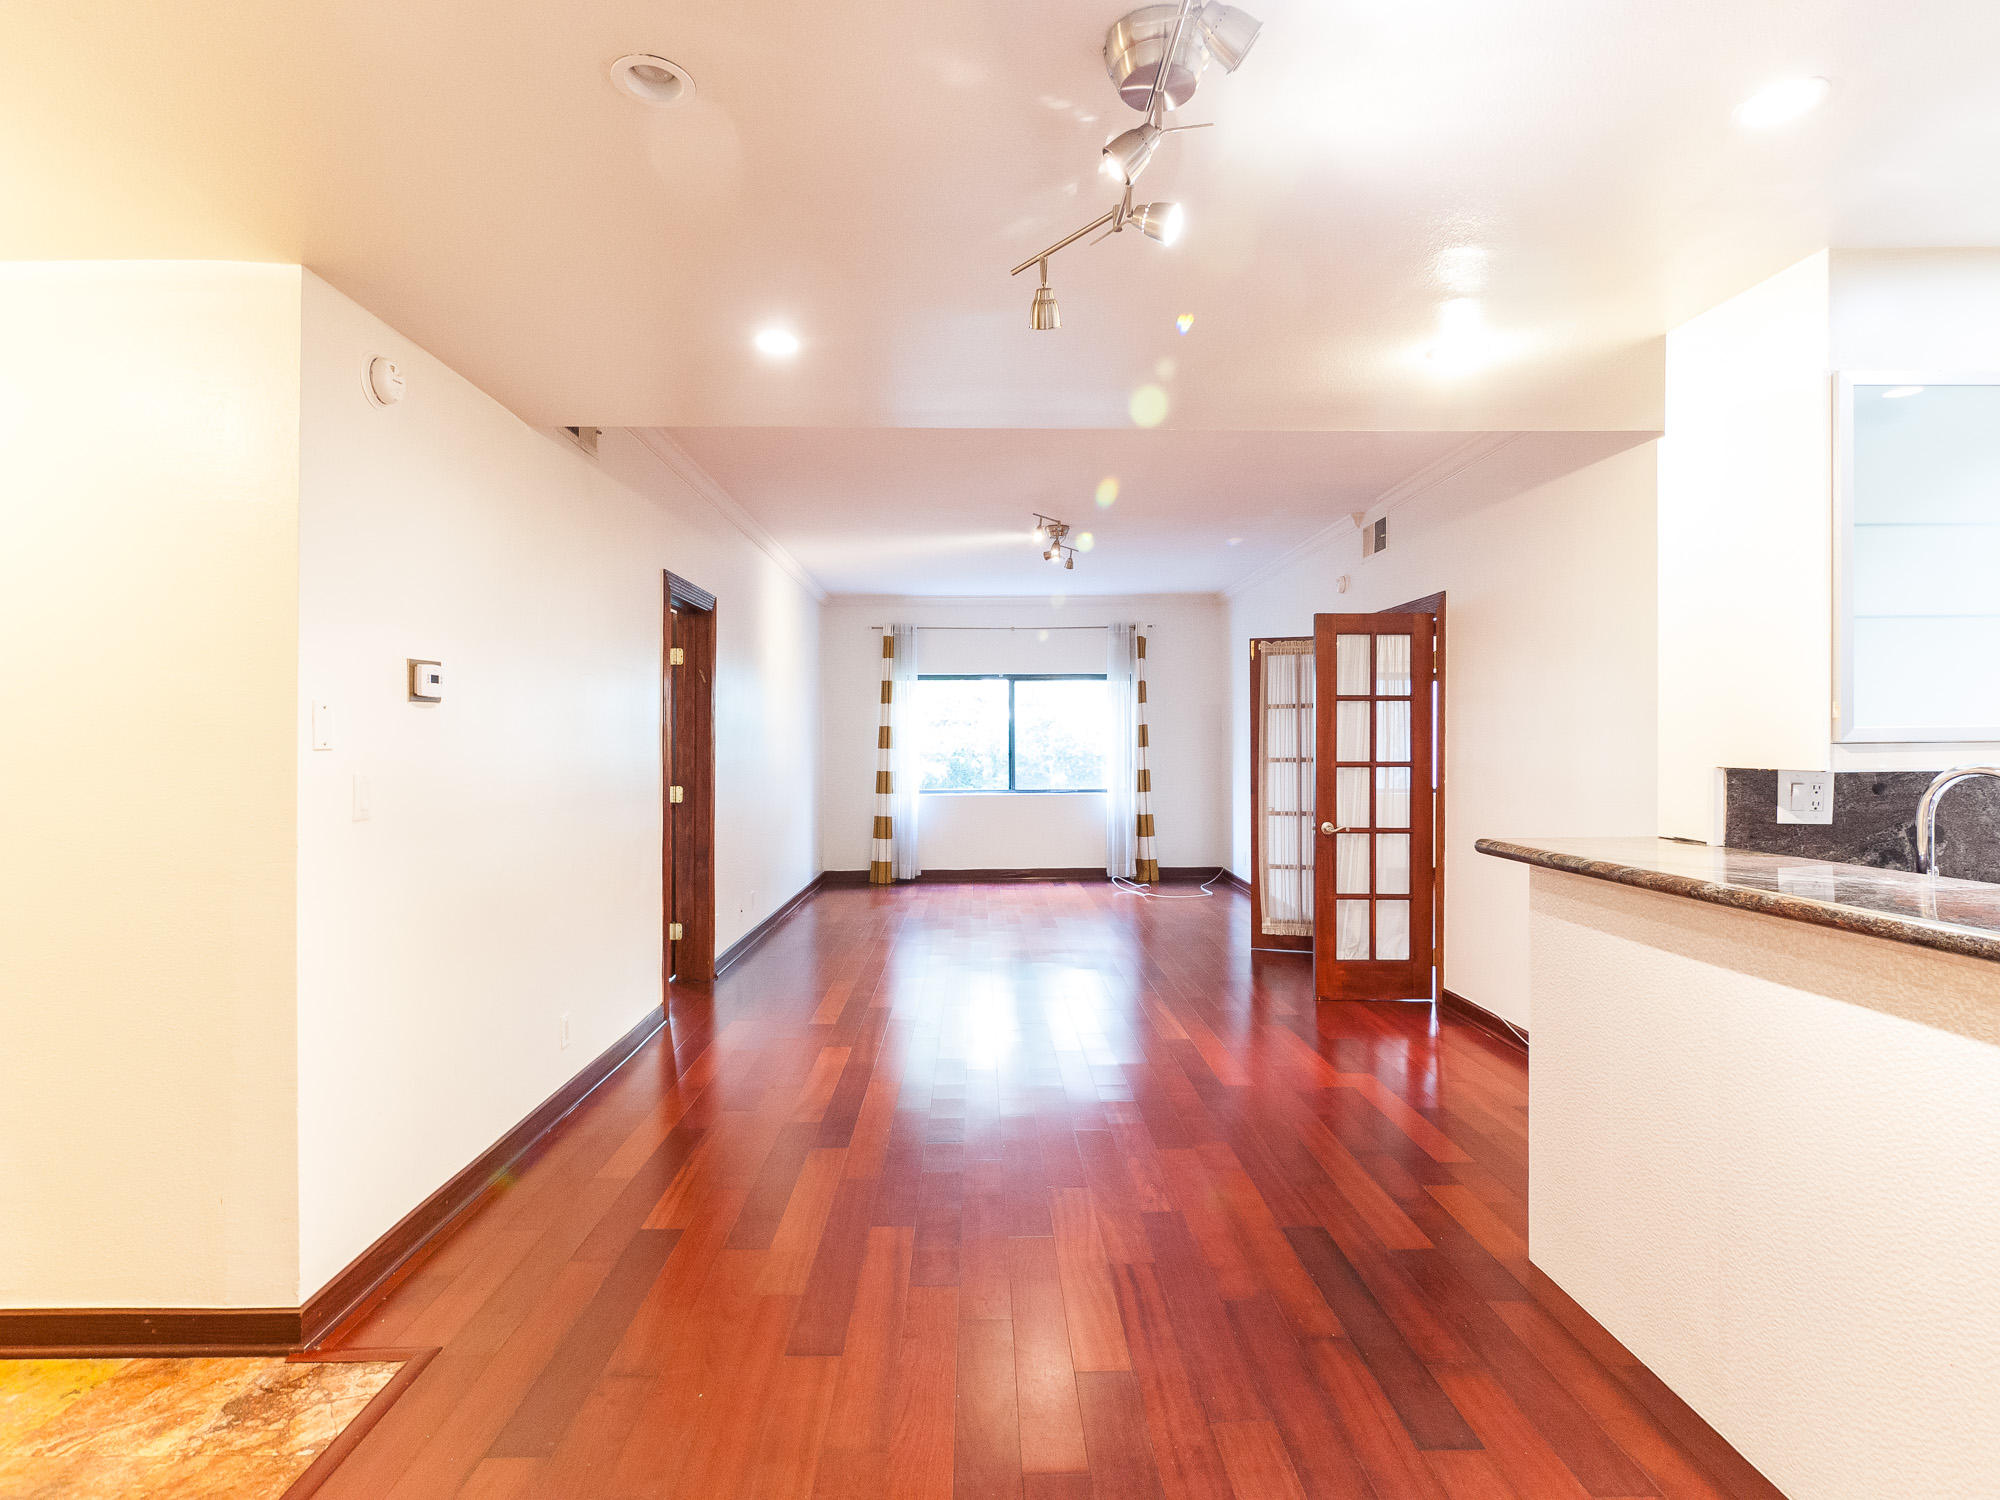 Pet-Friendly Condo with Updated Kitchen and Gleaming Wood Floors in Prime Bev Hills-Adjacent Location!